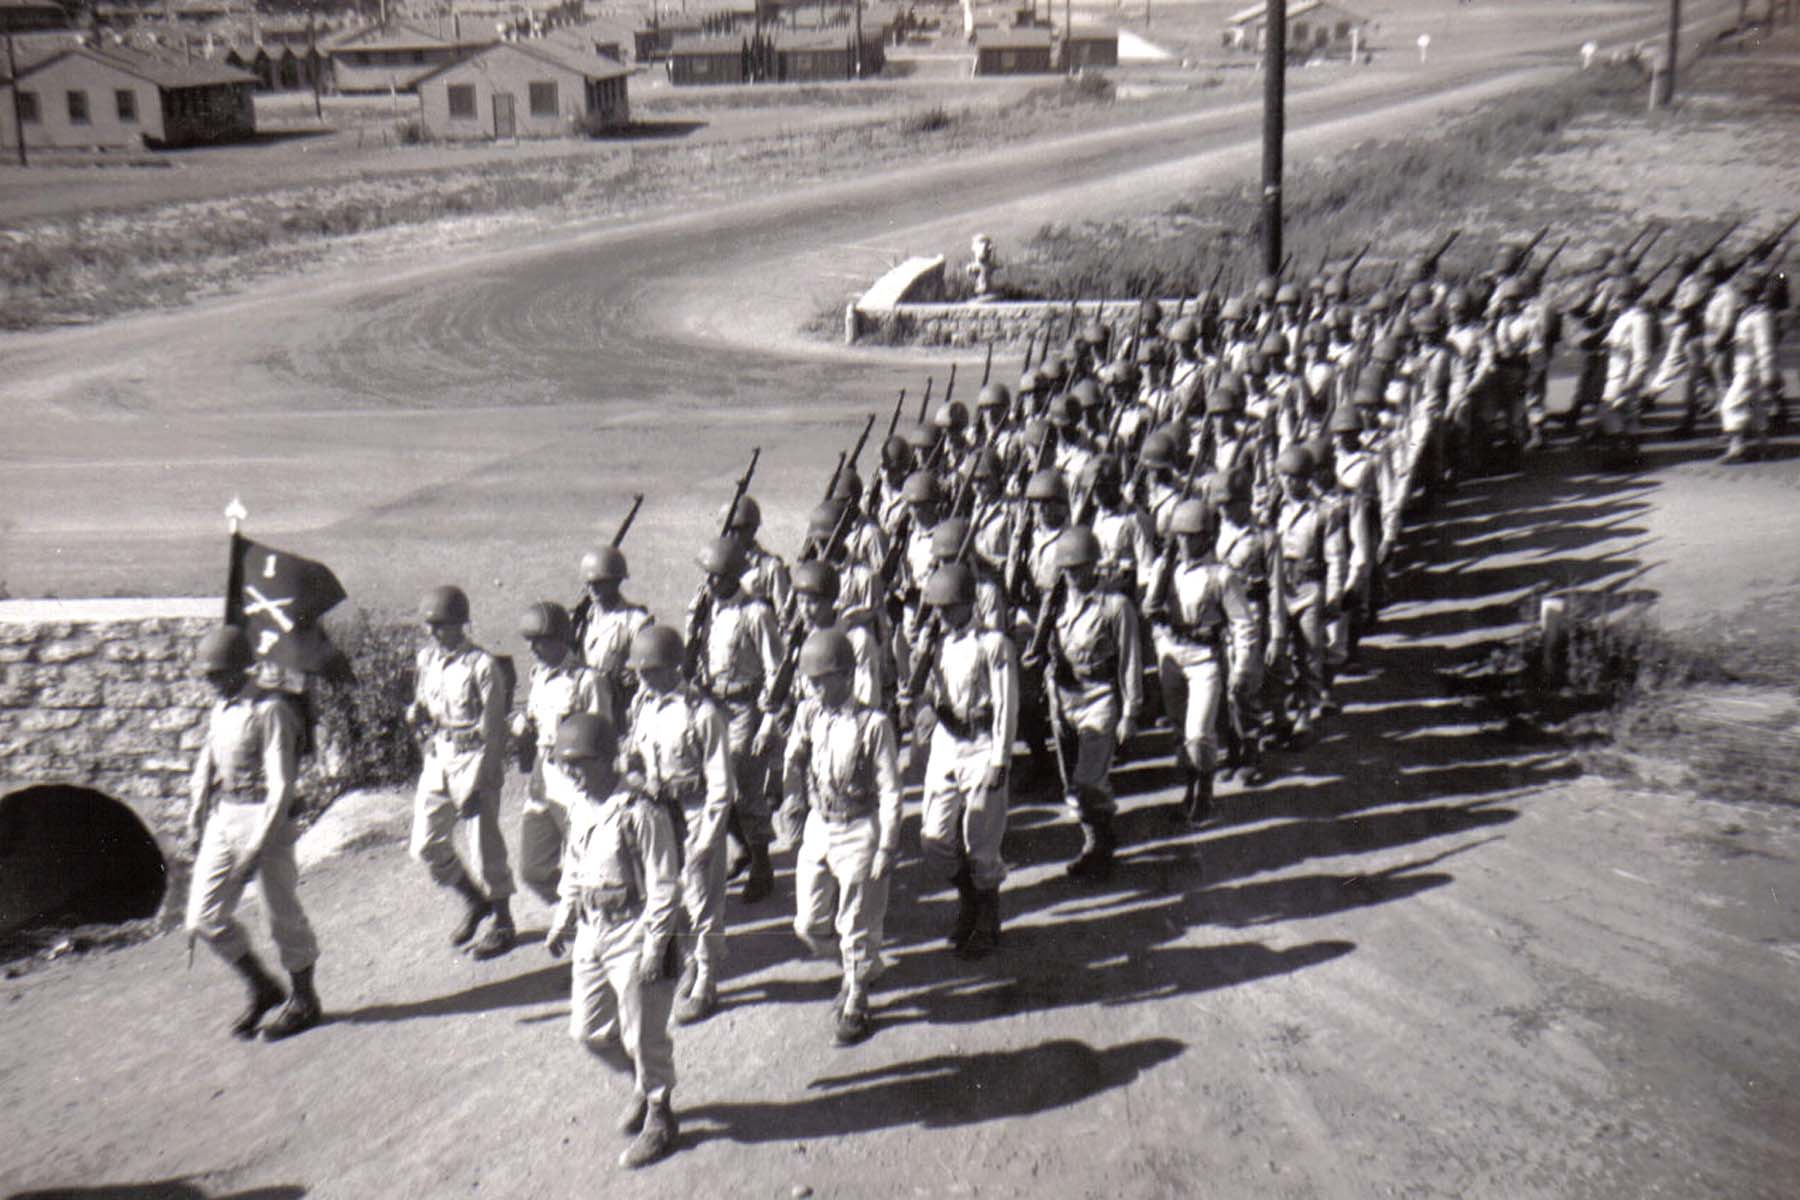 C23 Camp San Luis Obispo - August 2_ 1943 parade - F Company enters the parade ground